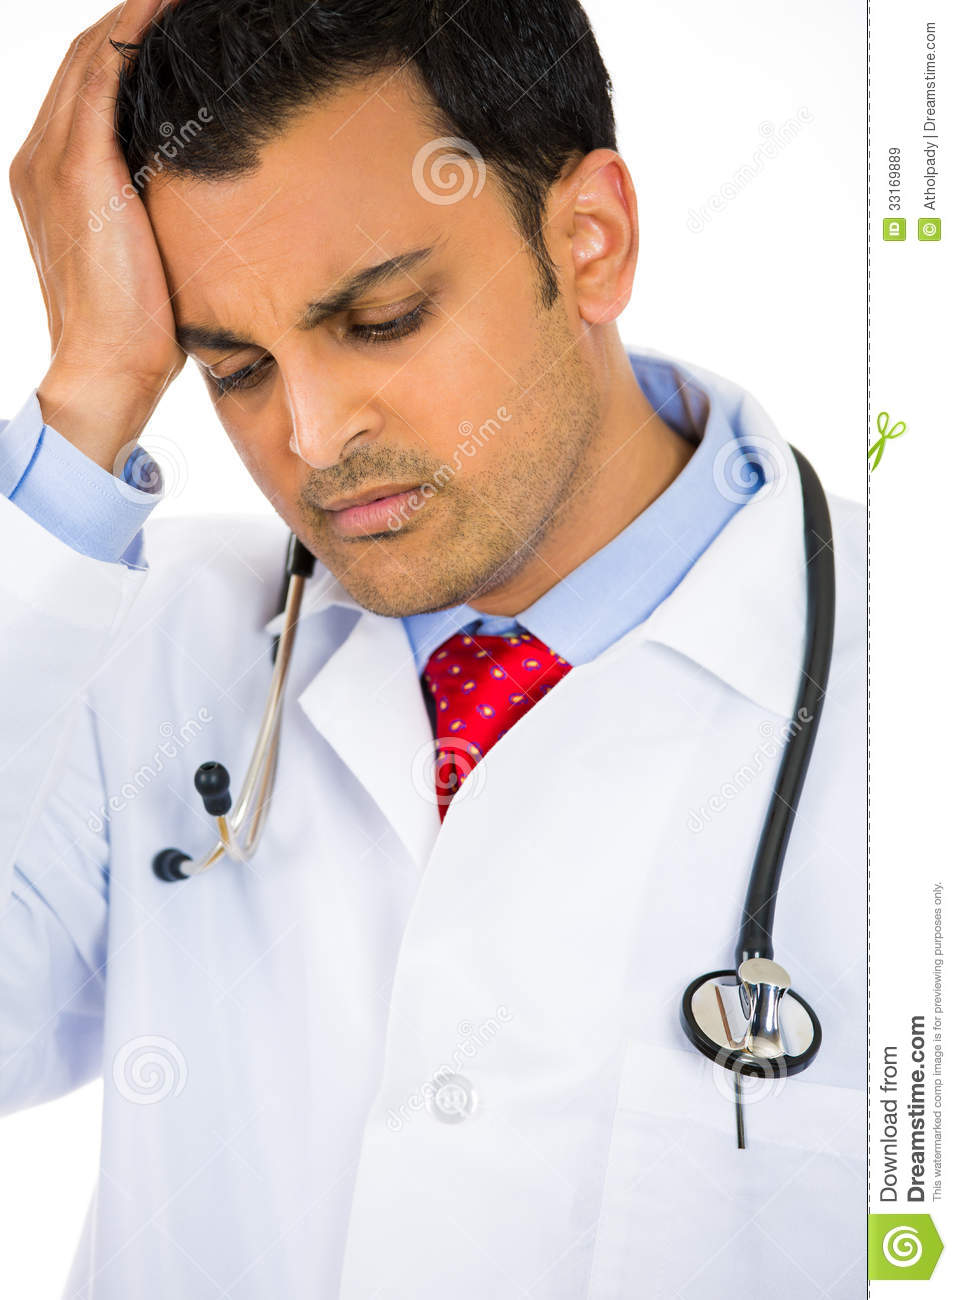 how to help overworked and stressed doctors